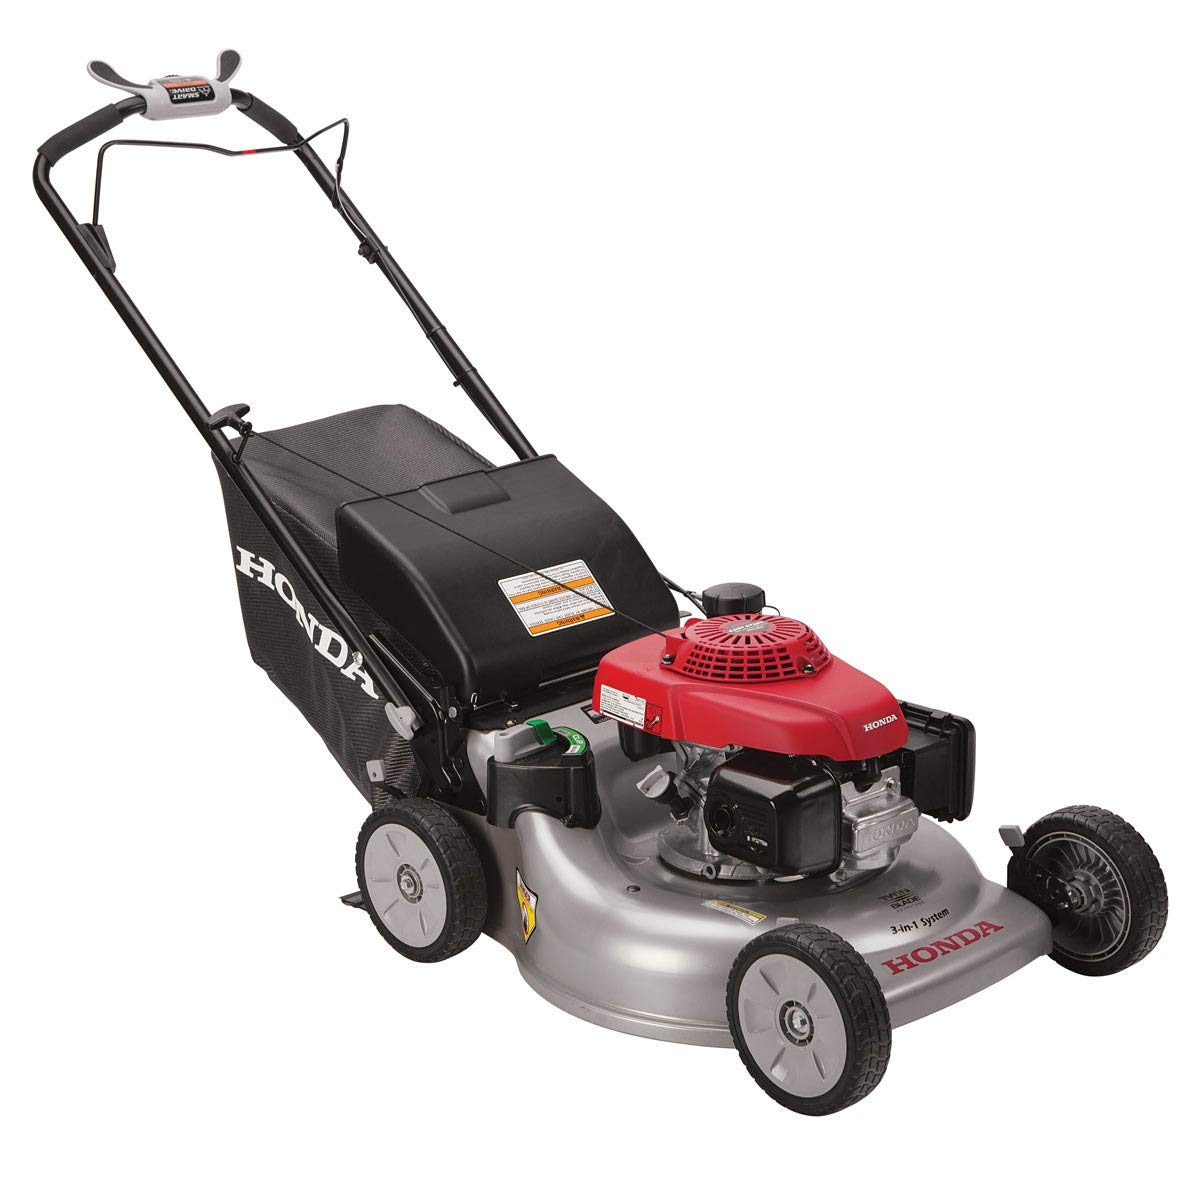 Honda Variable Speed Self Propelled Lawn Mower